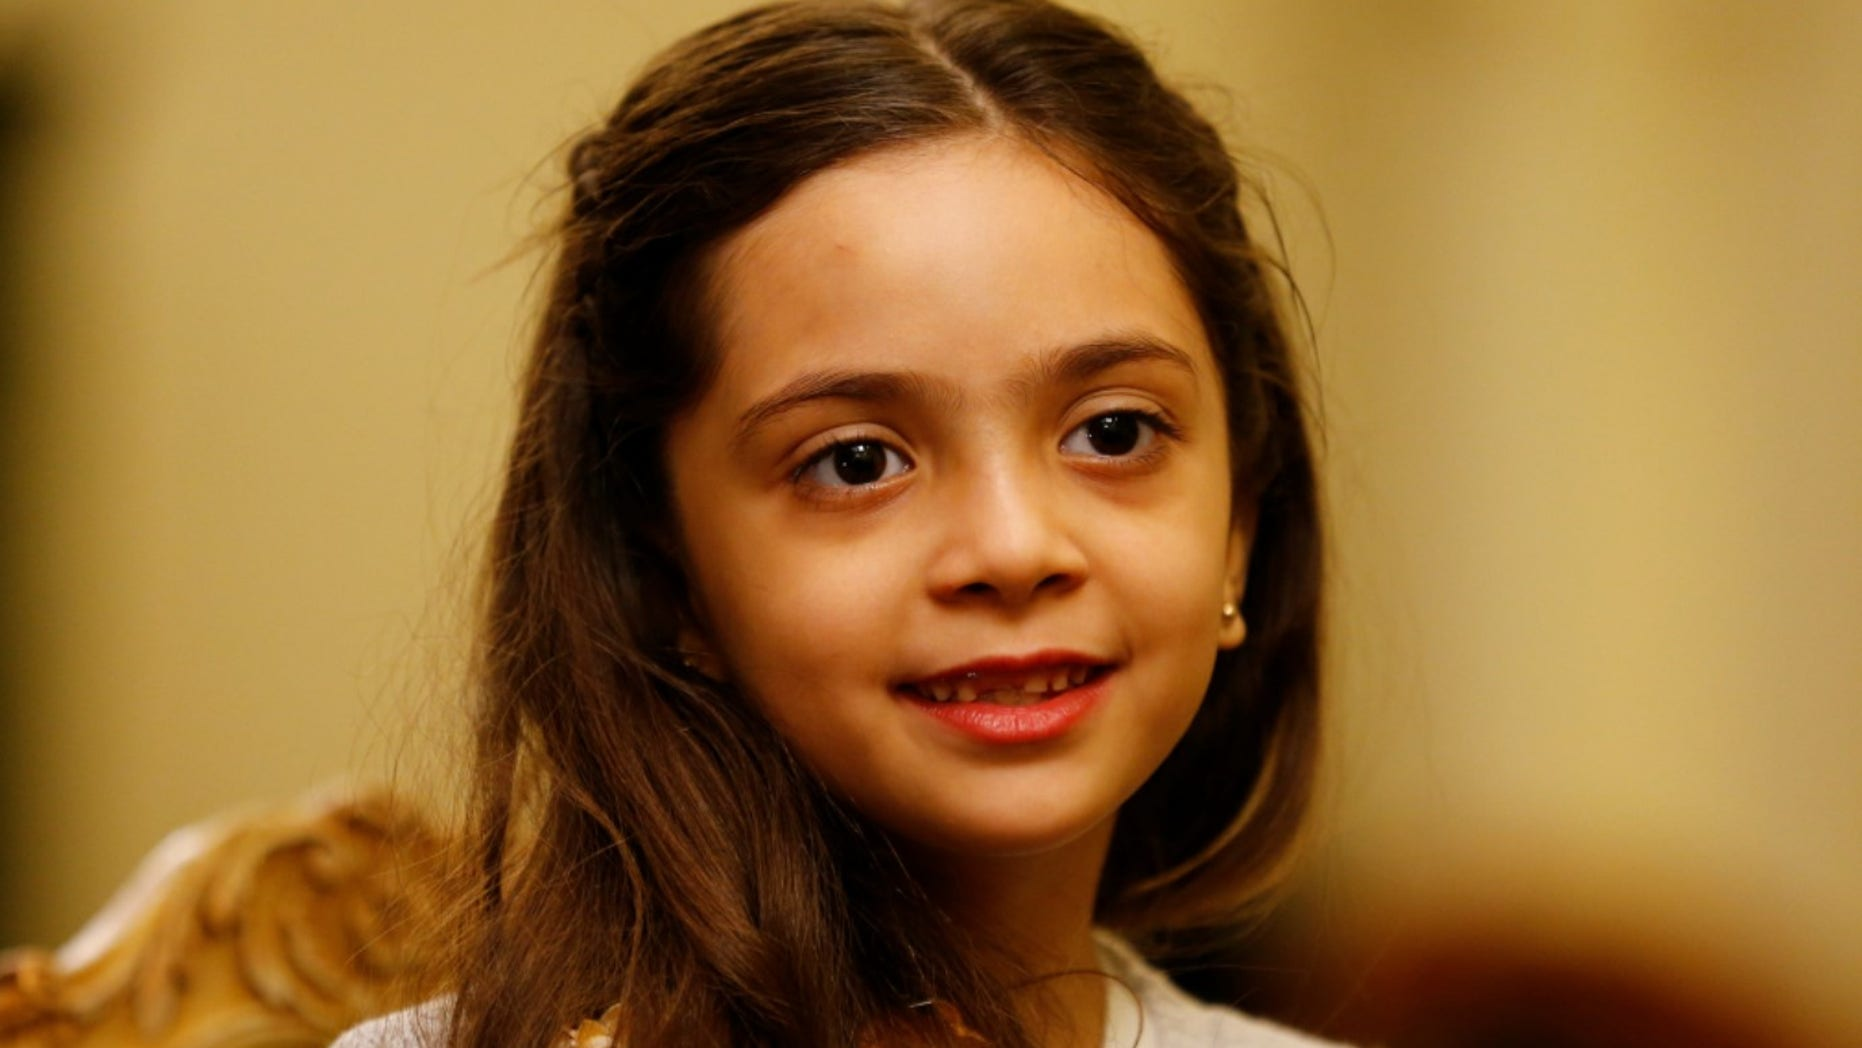 Bana Alabed, the young girl who became the face of the conflict in Aleppo on Twitter, wants newly elected French President Emmanuel Macron to help the children of the world.